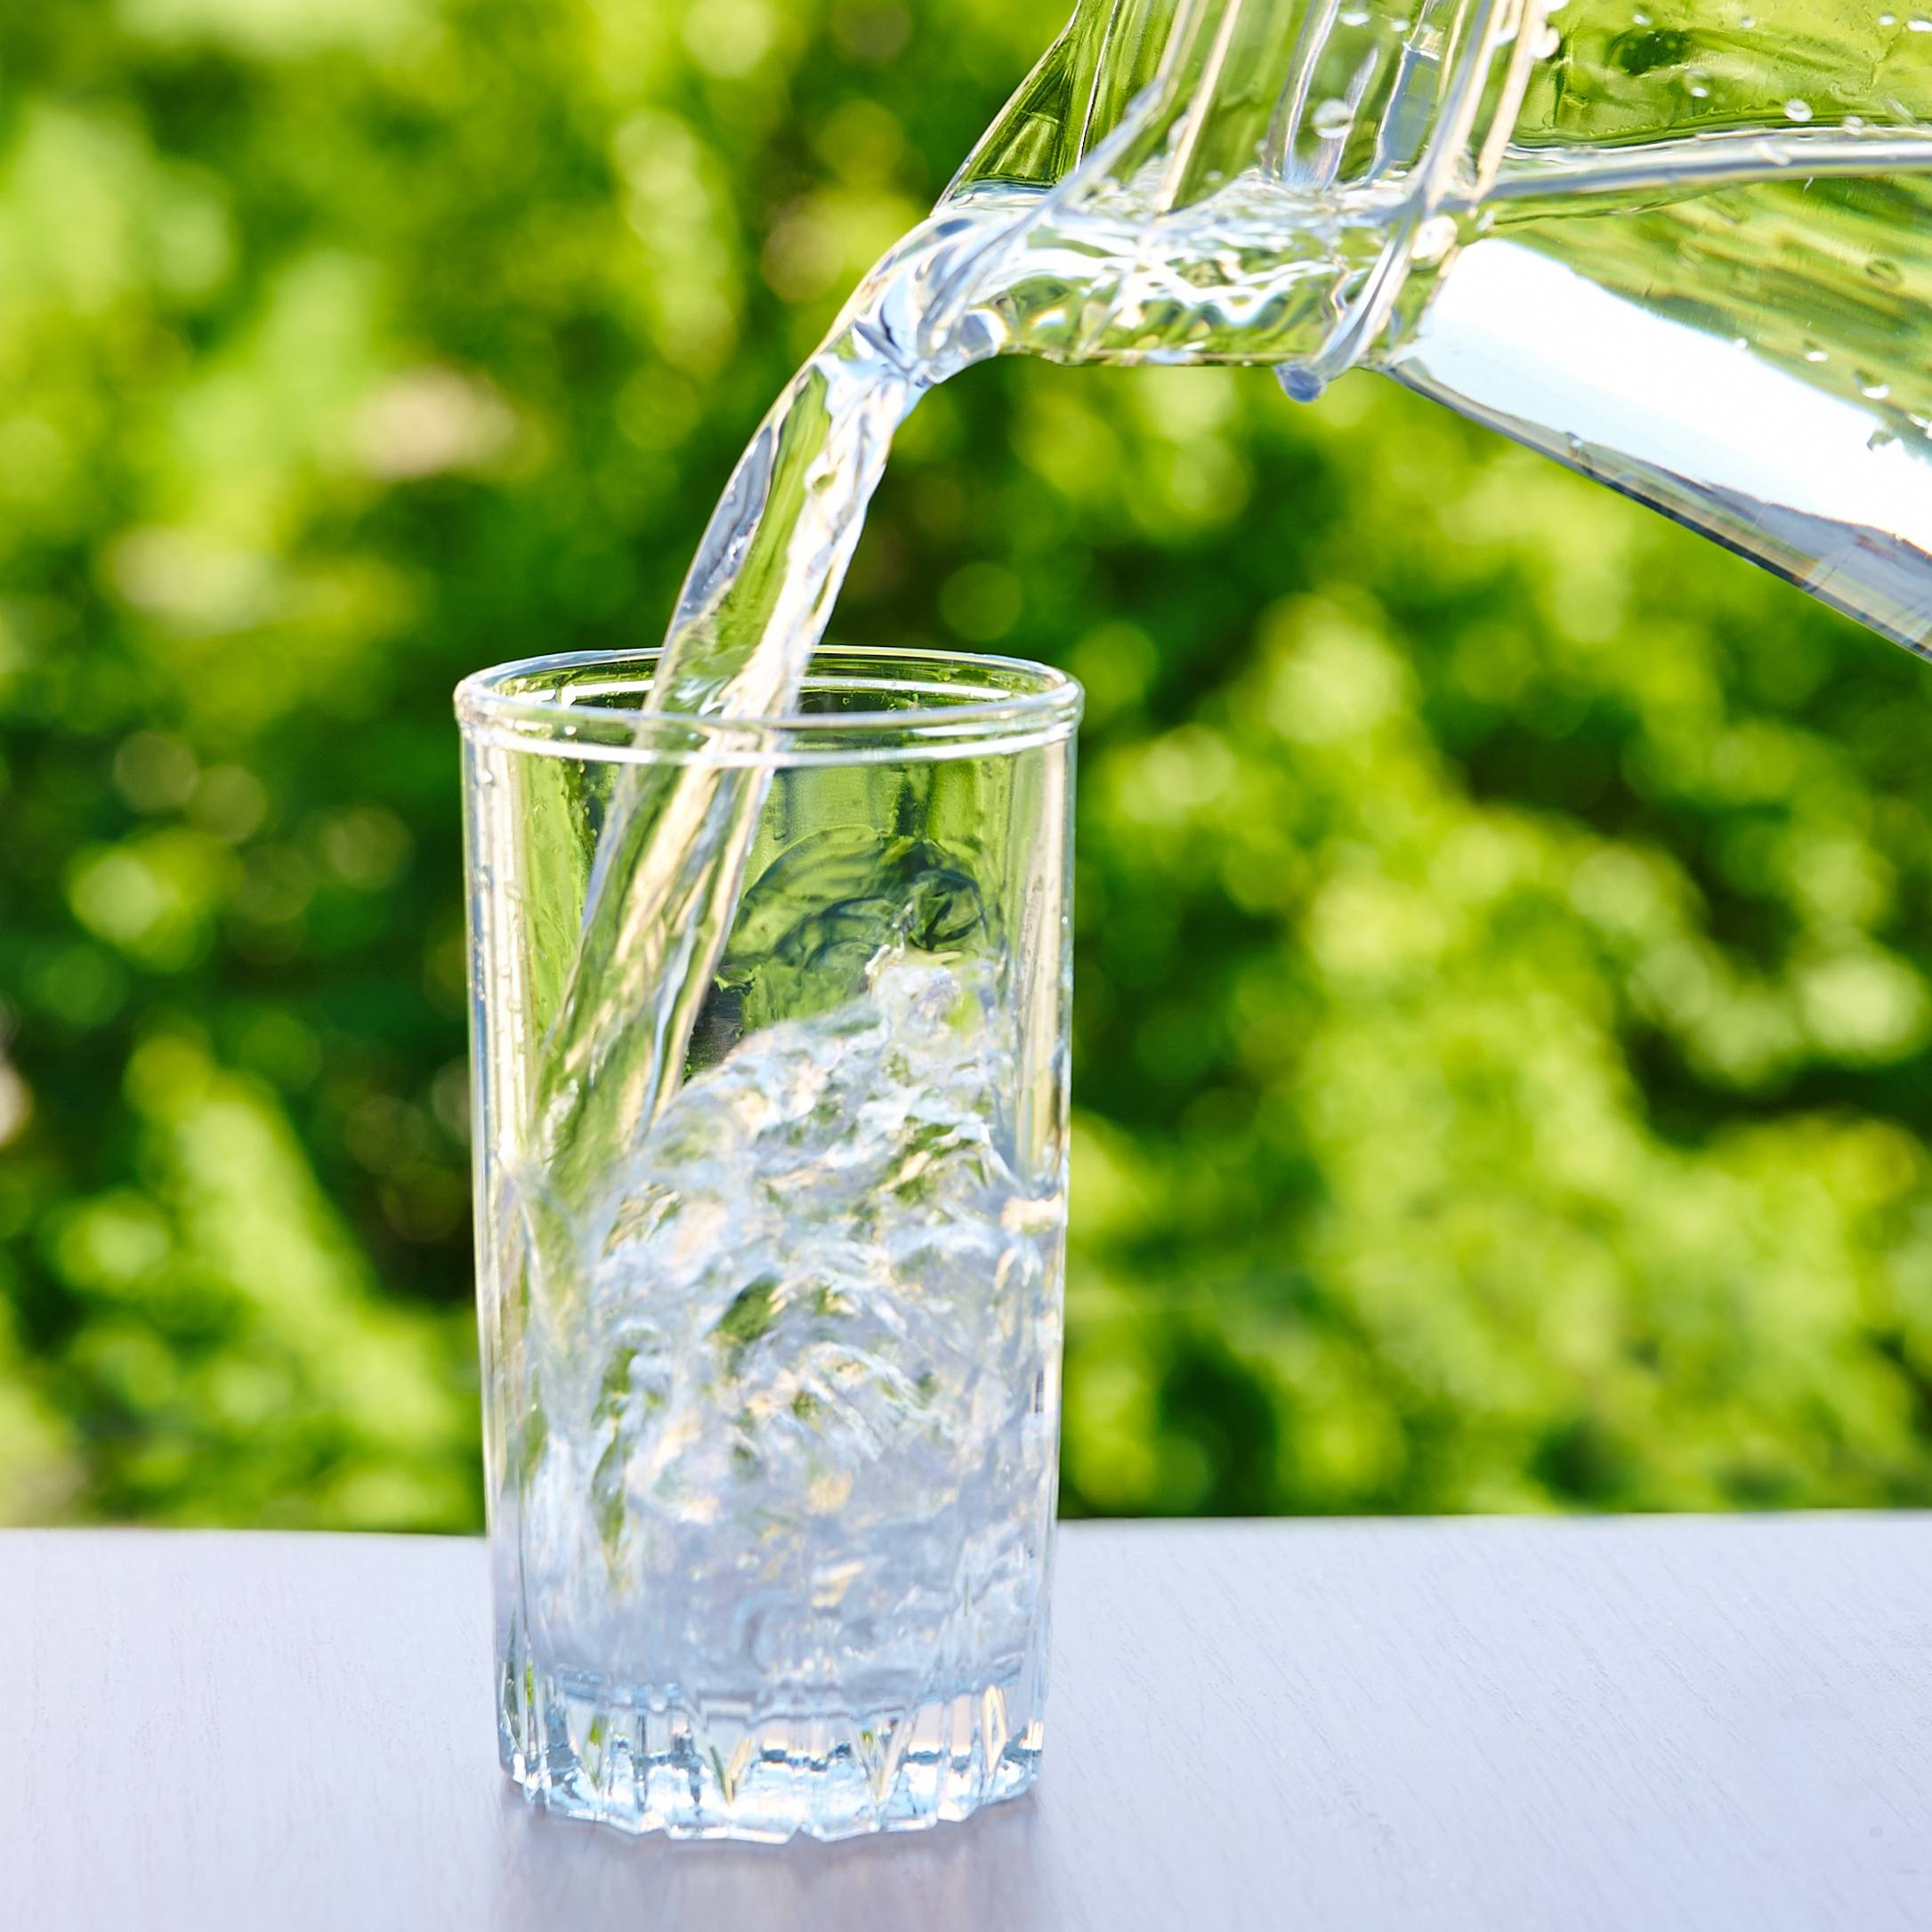 a glass pitcher of water with someone pouring it into a glass with ice cubes